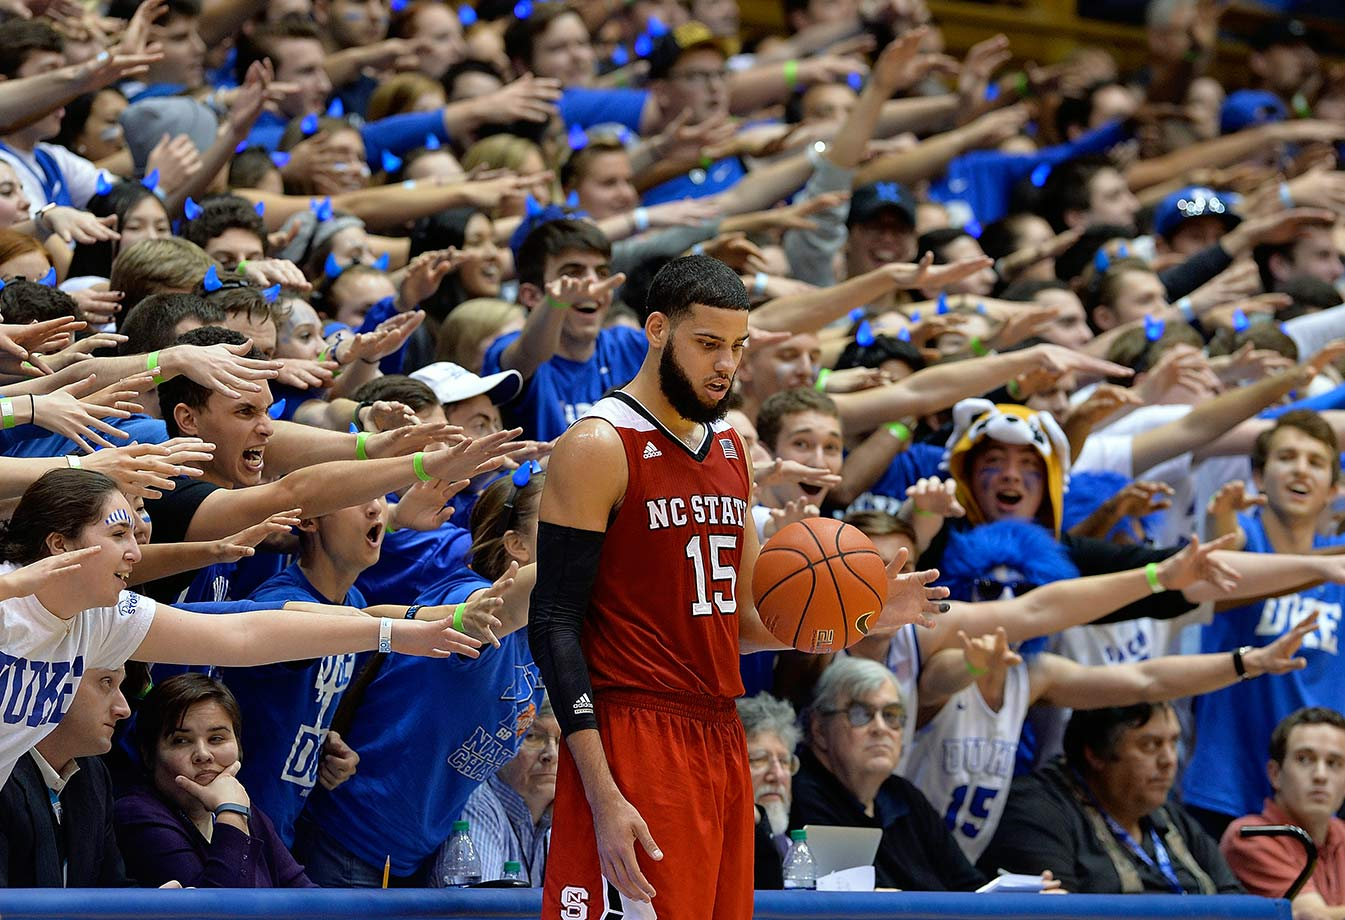 The Cameron Crazies taunt Cody Martin during a game between Duke and NC State at Cameron Indoor Stadium in Durham, N.C.